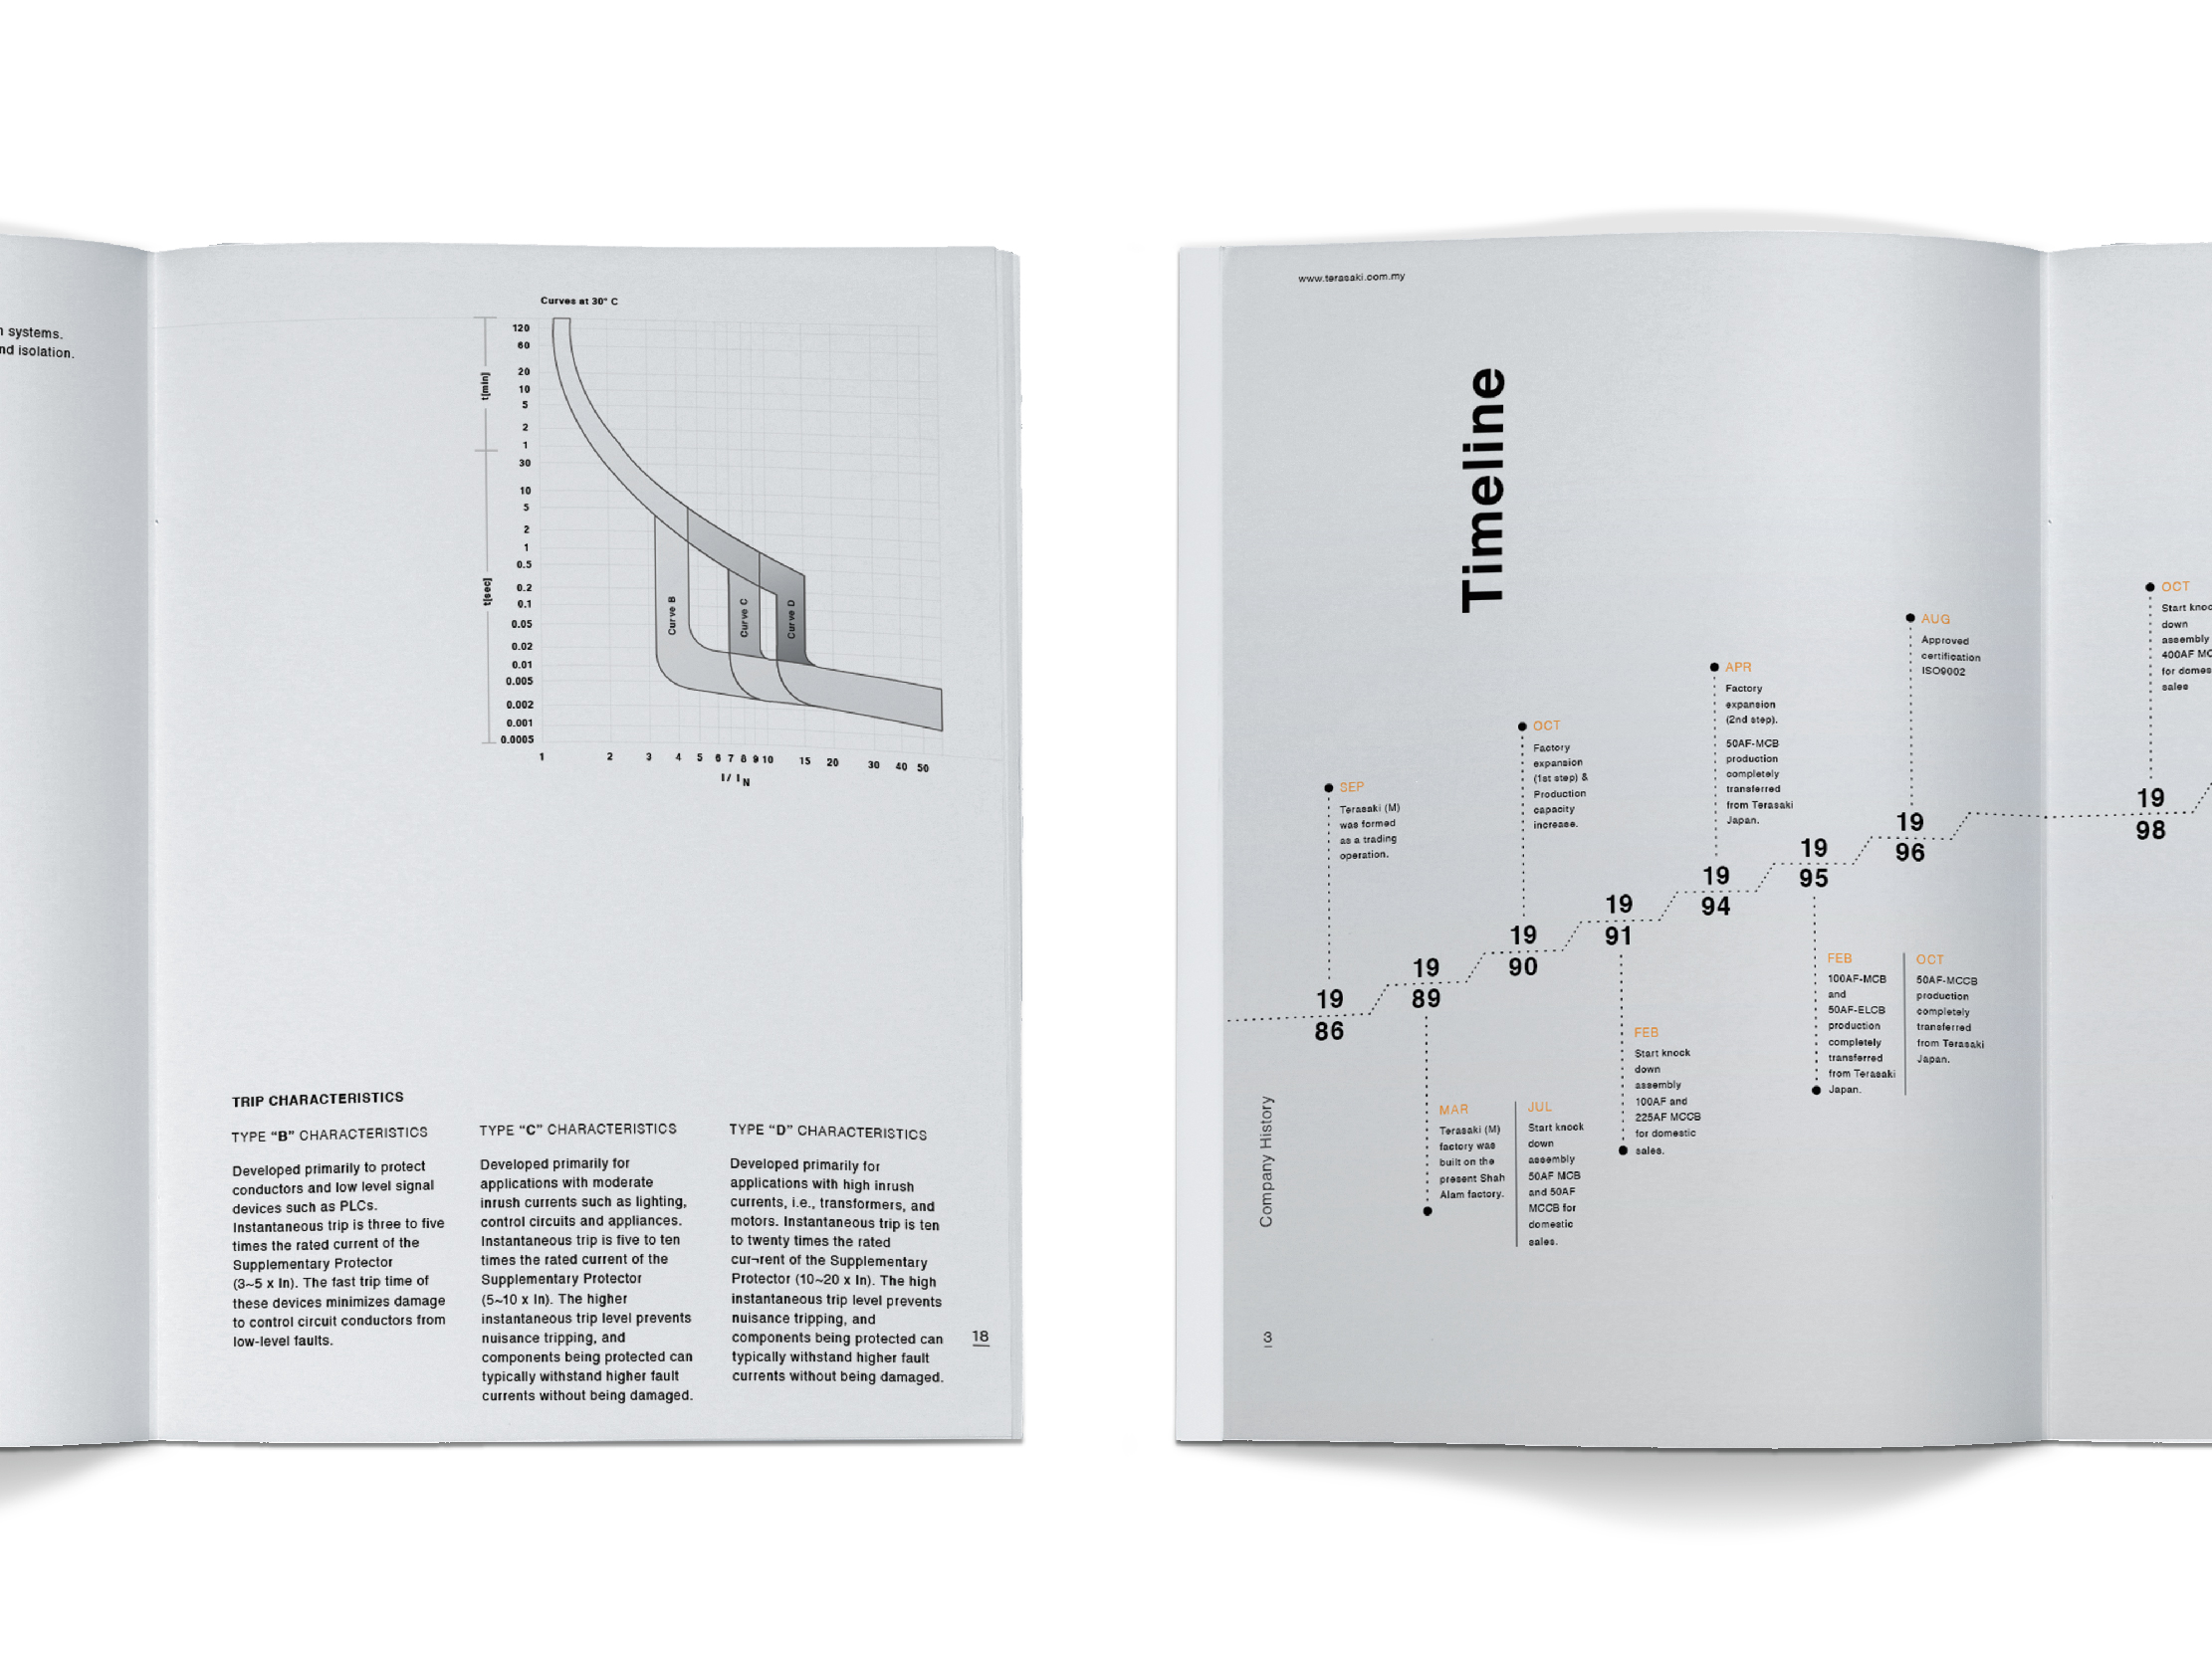 Terasaki Electric company profile inner pages clean layout design with graph and timeline design